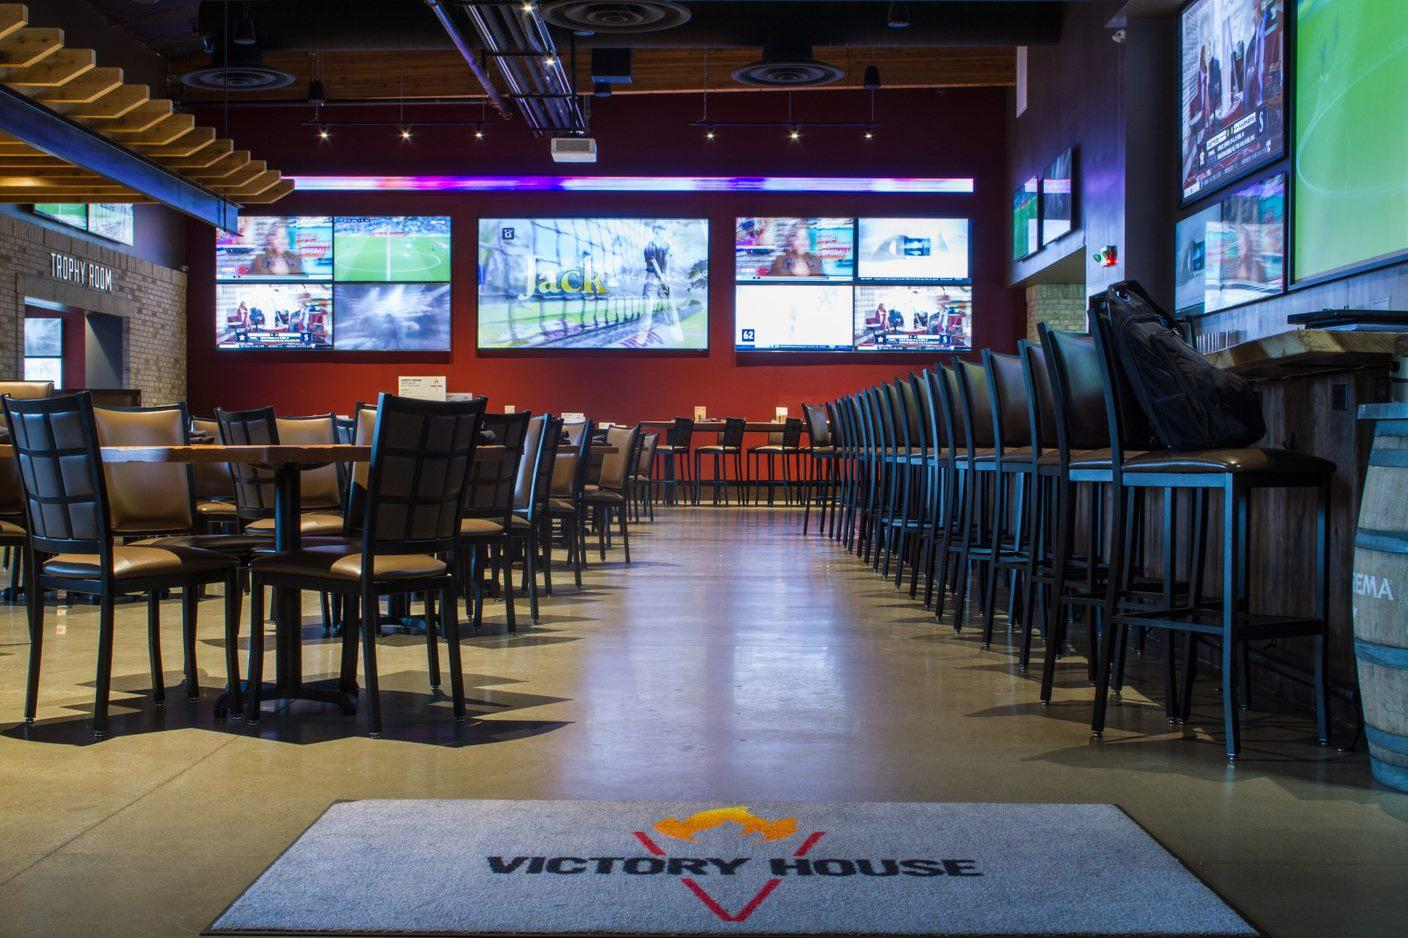 Victory House event space